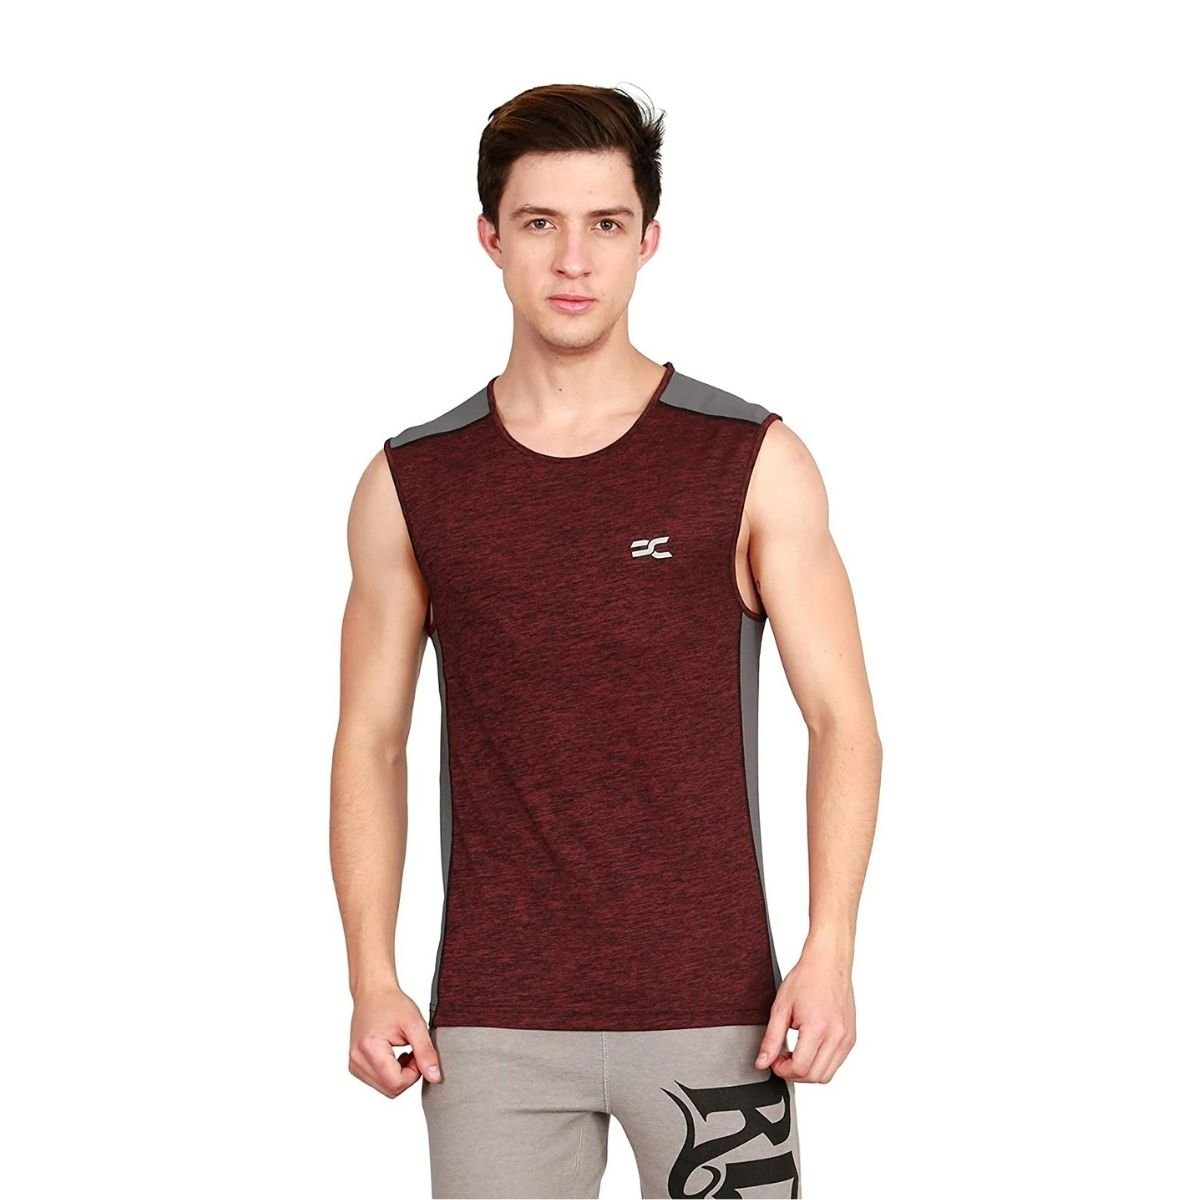 Ronnie Coleman Men's Maroon Color Sports and Casual T-Shirt